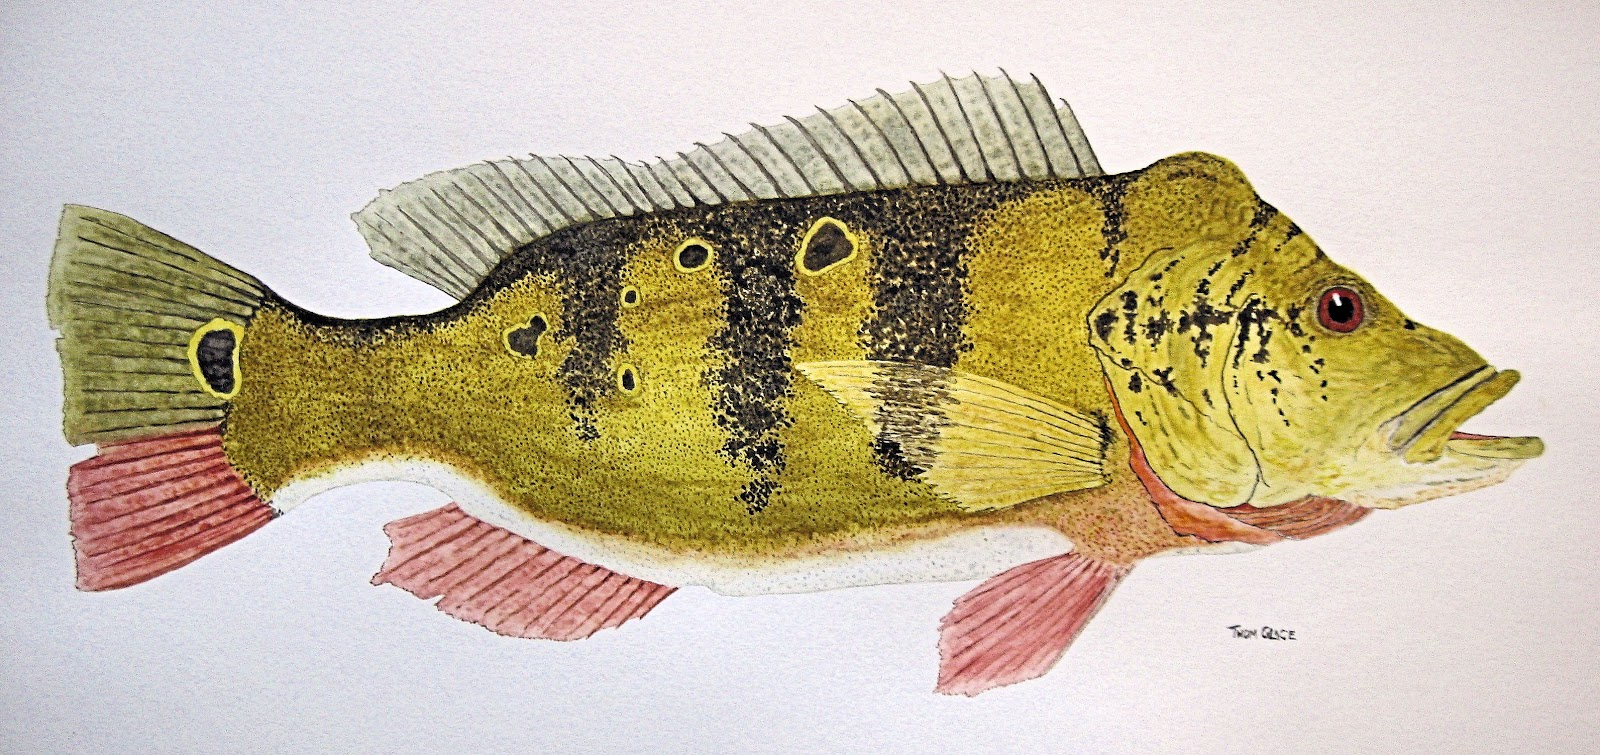 ... Study of an Adult Butterfly Peacock Bass (Cichla ocellaris